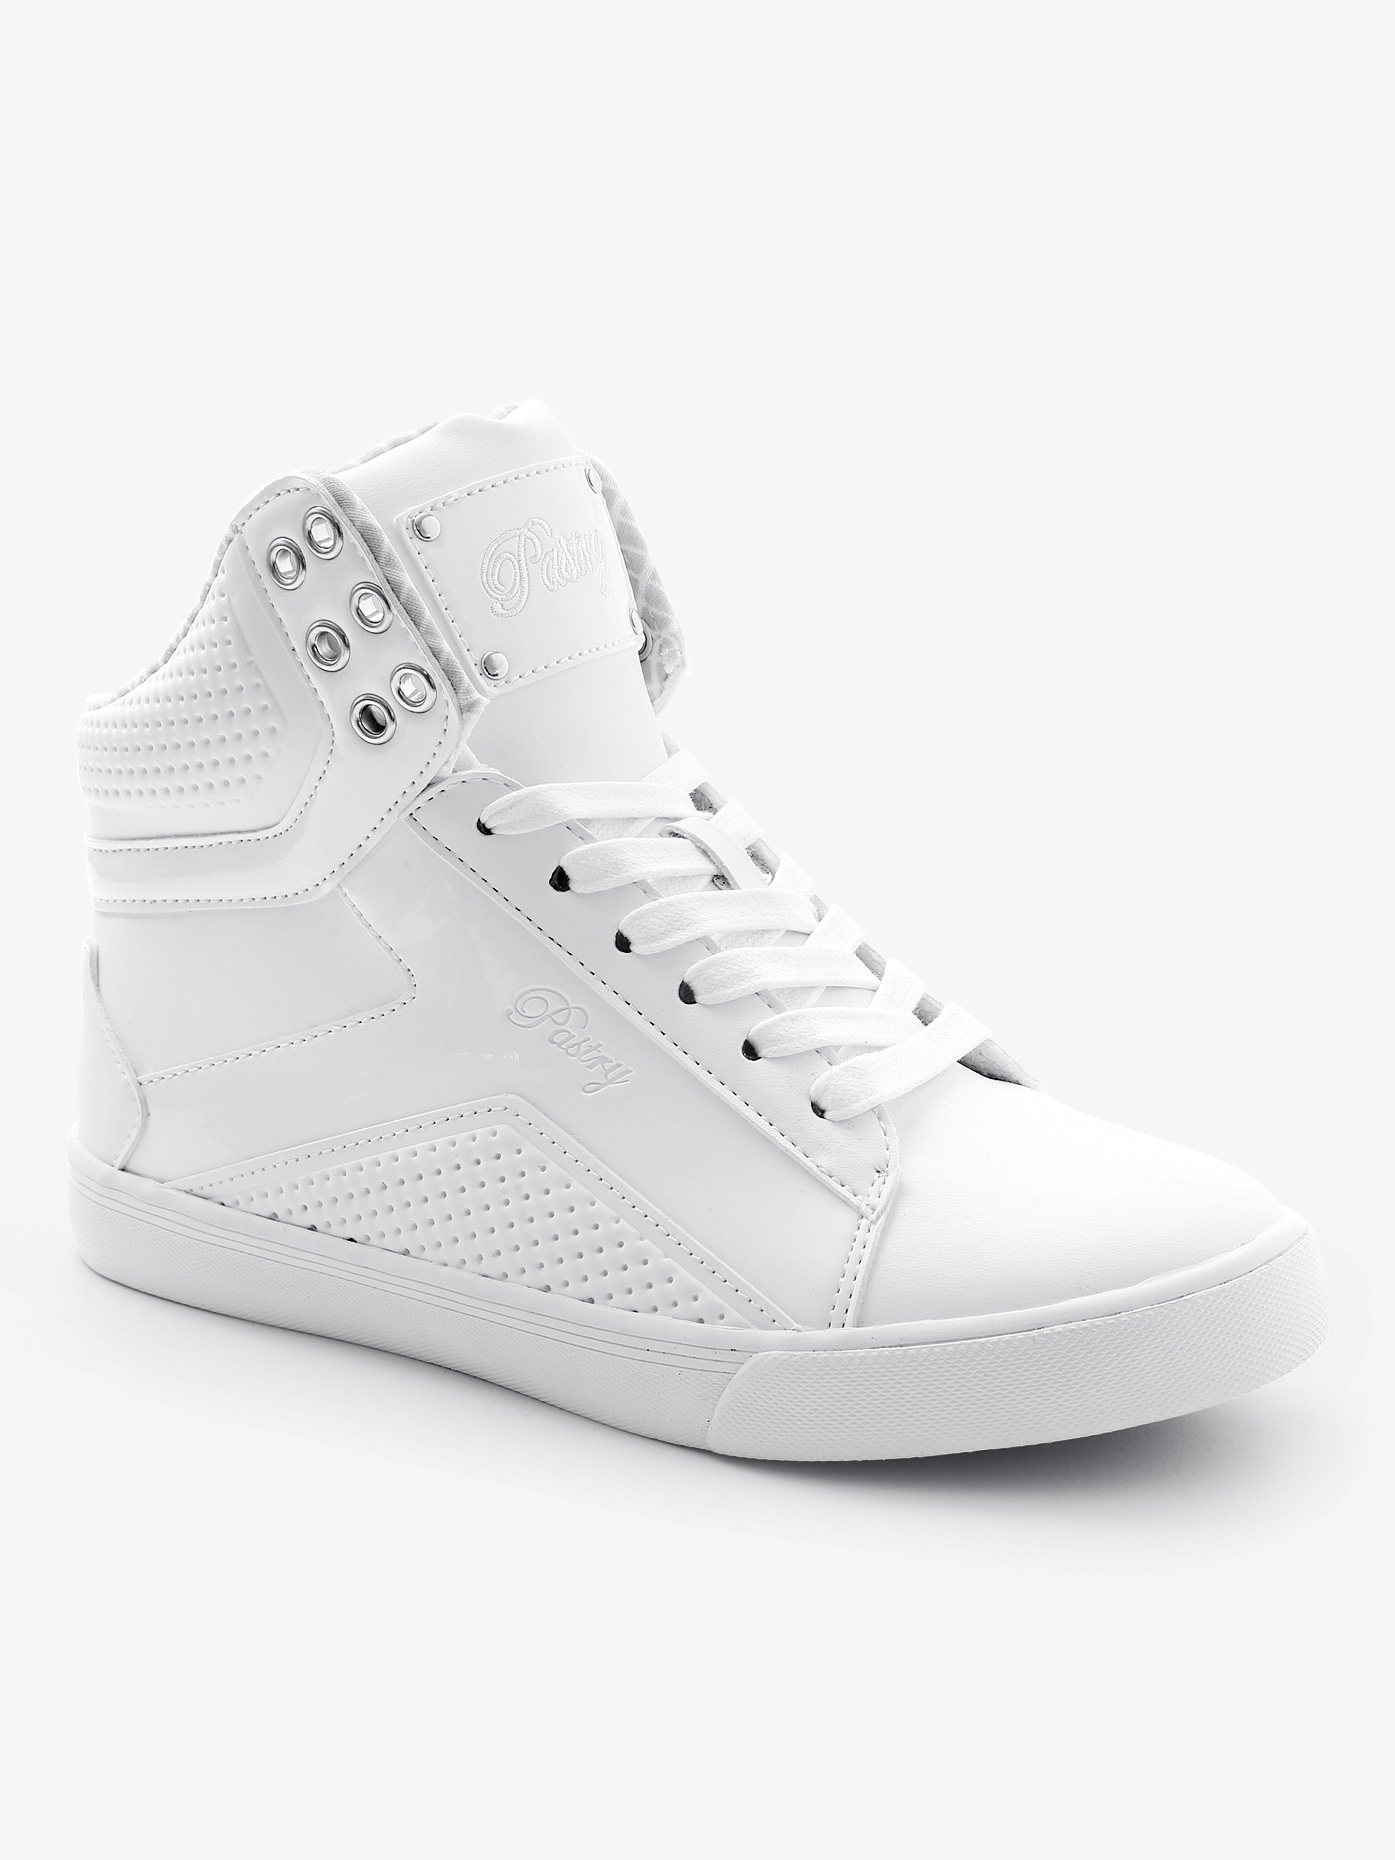 Pastry Adult Pop Tart Grid High Top Sneakers PA153102